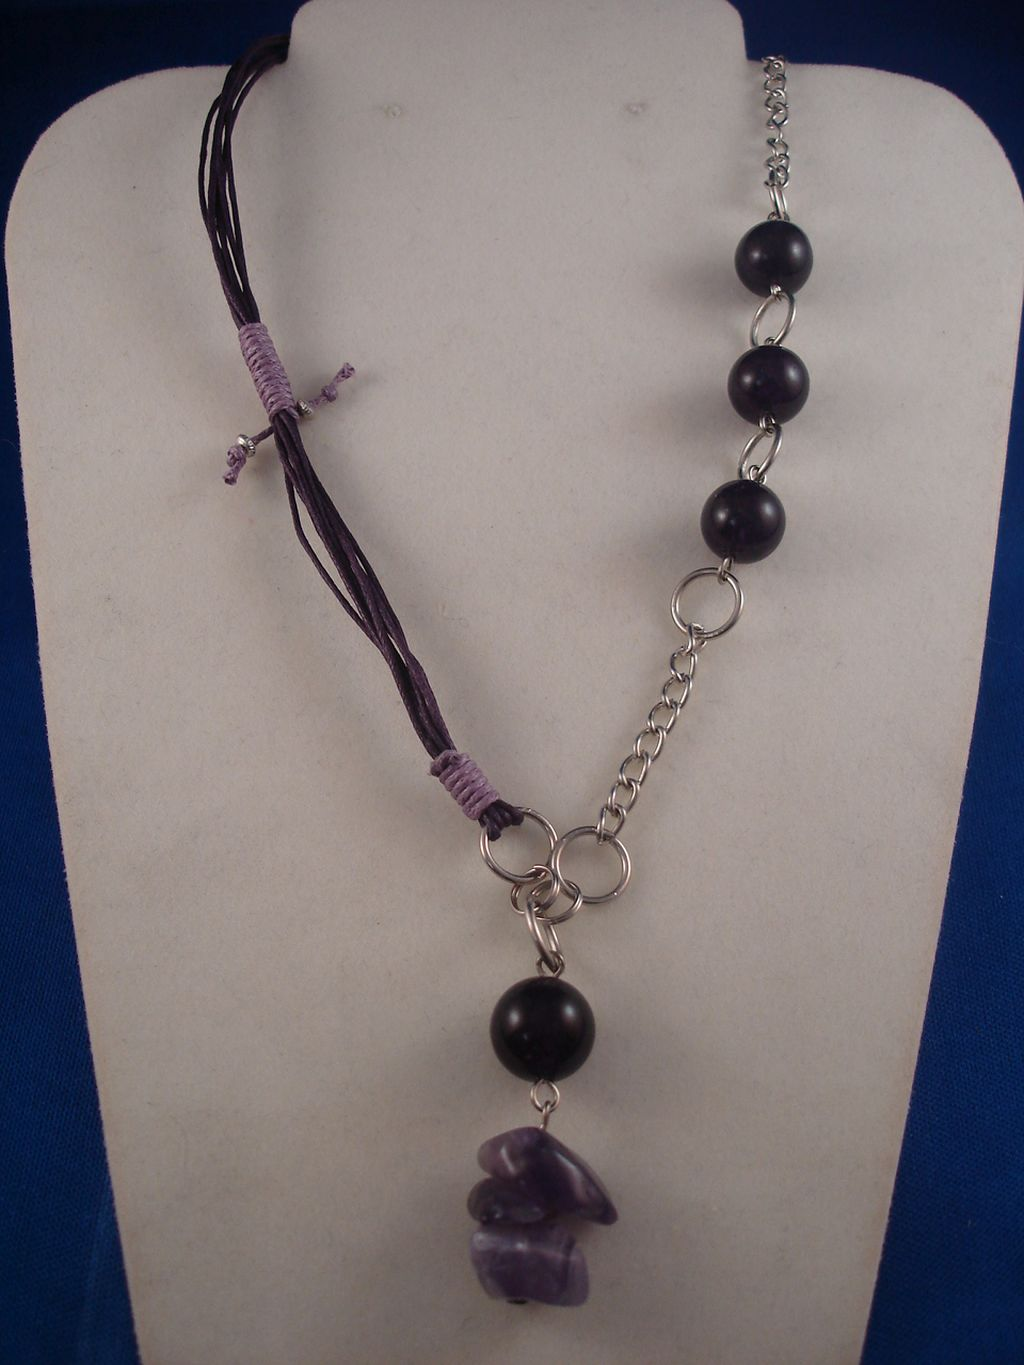 Amethyst Necklace, Genuine Stones, Cotton & Chain